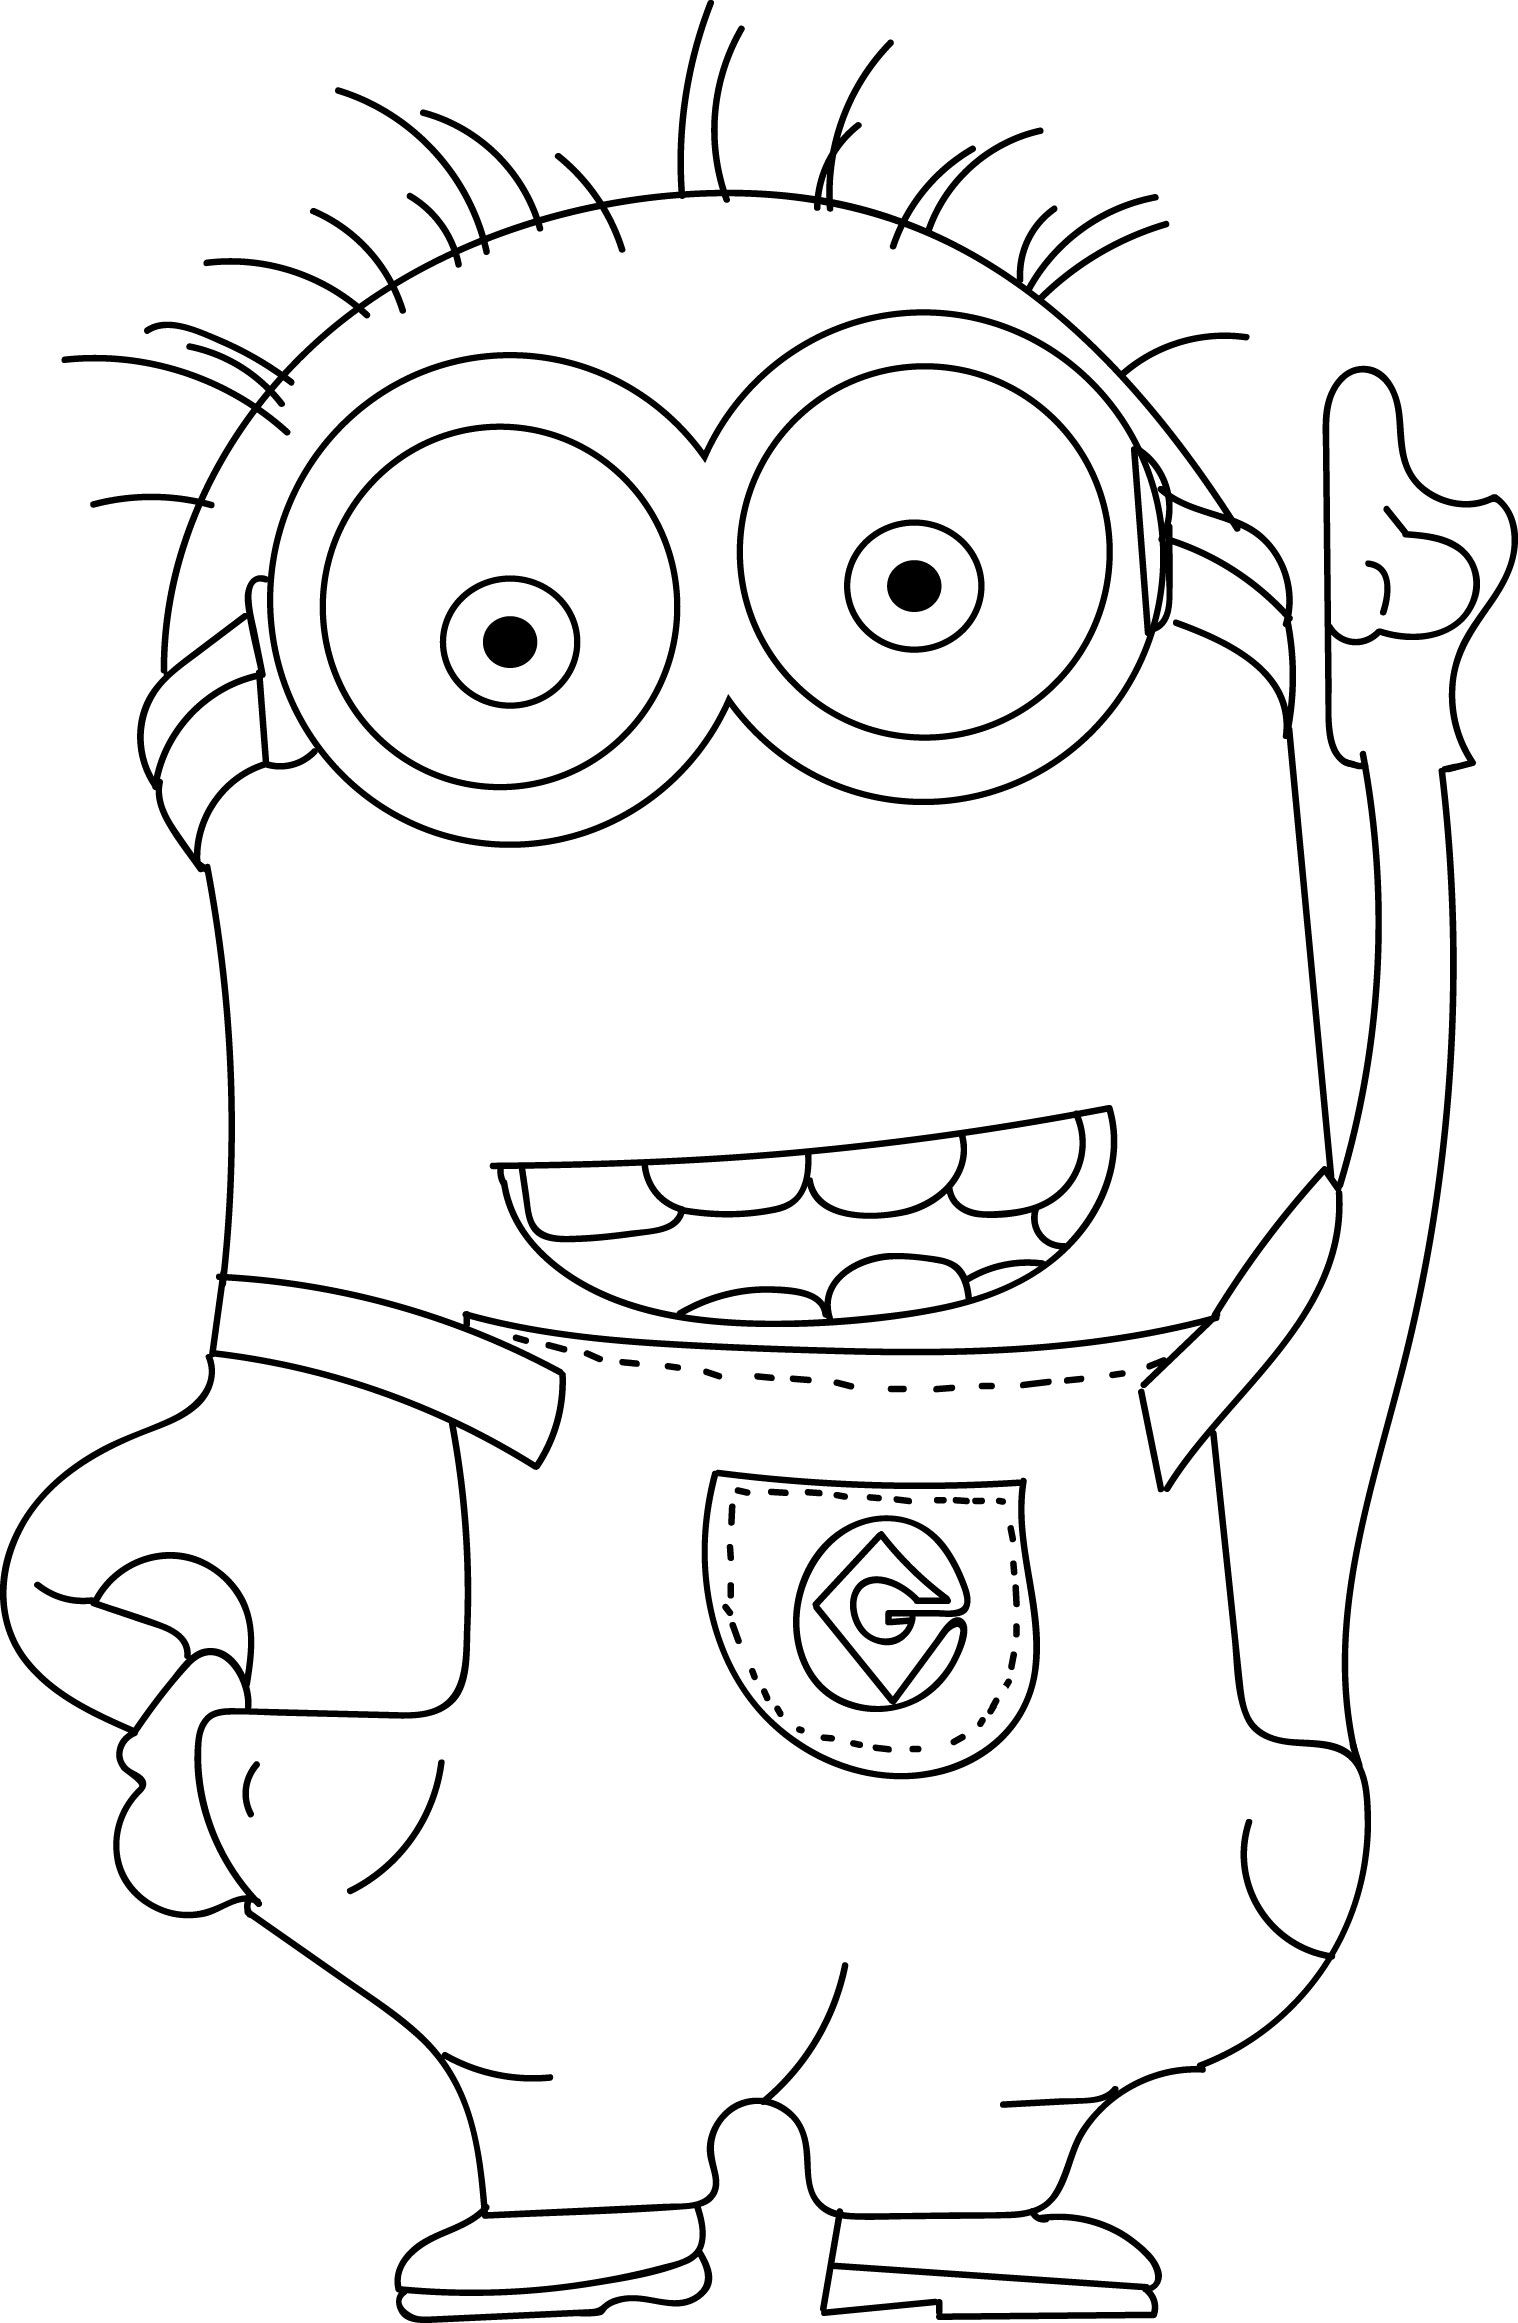 printable minions minions free to color for children minions kids coloring minions printable